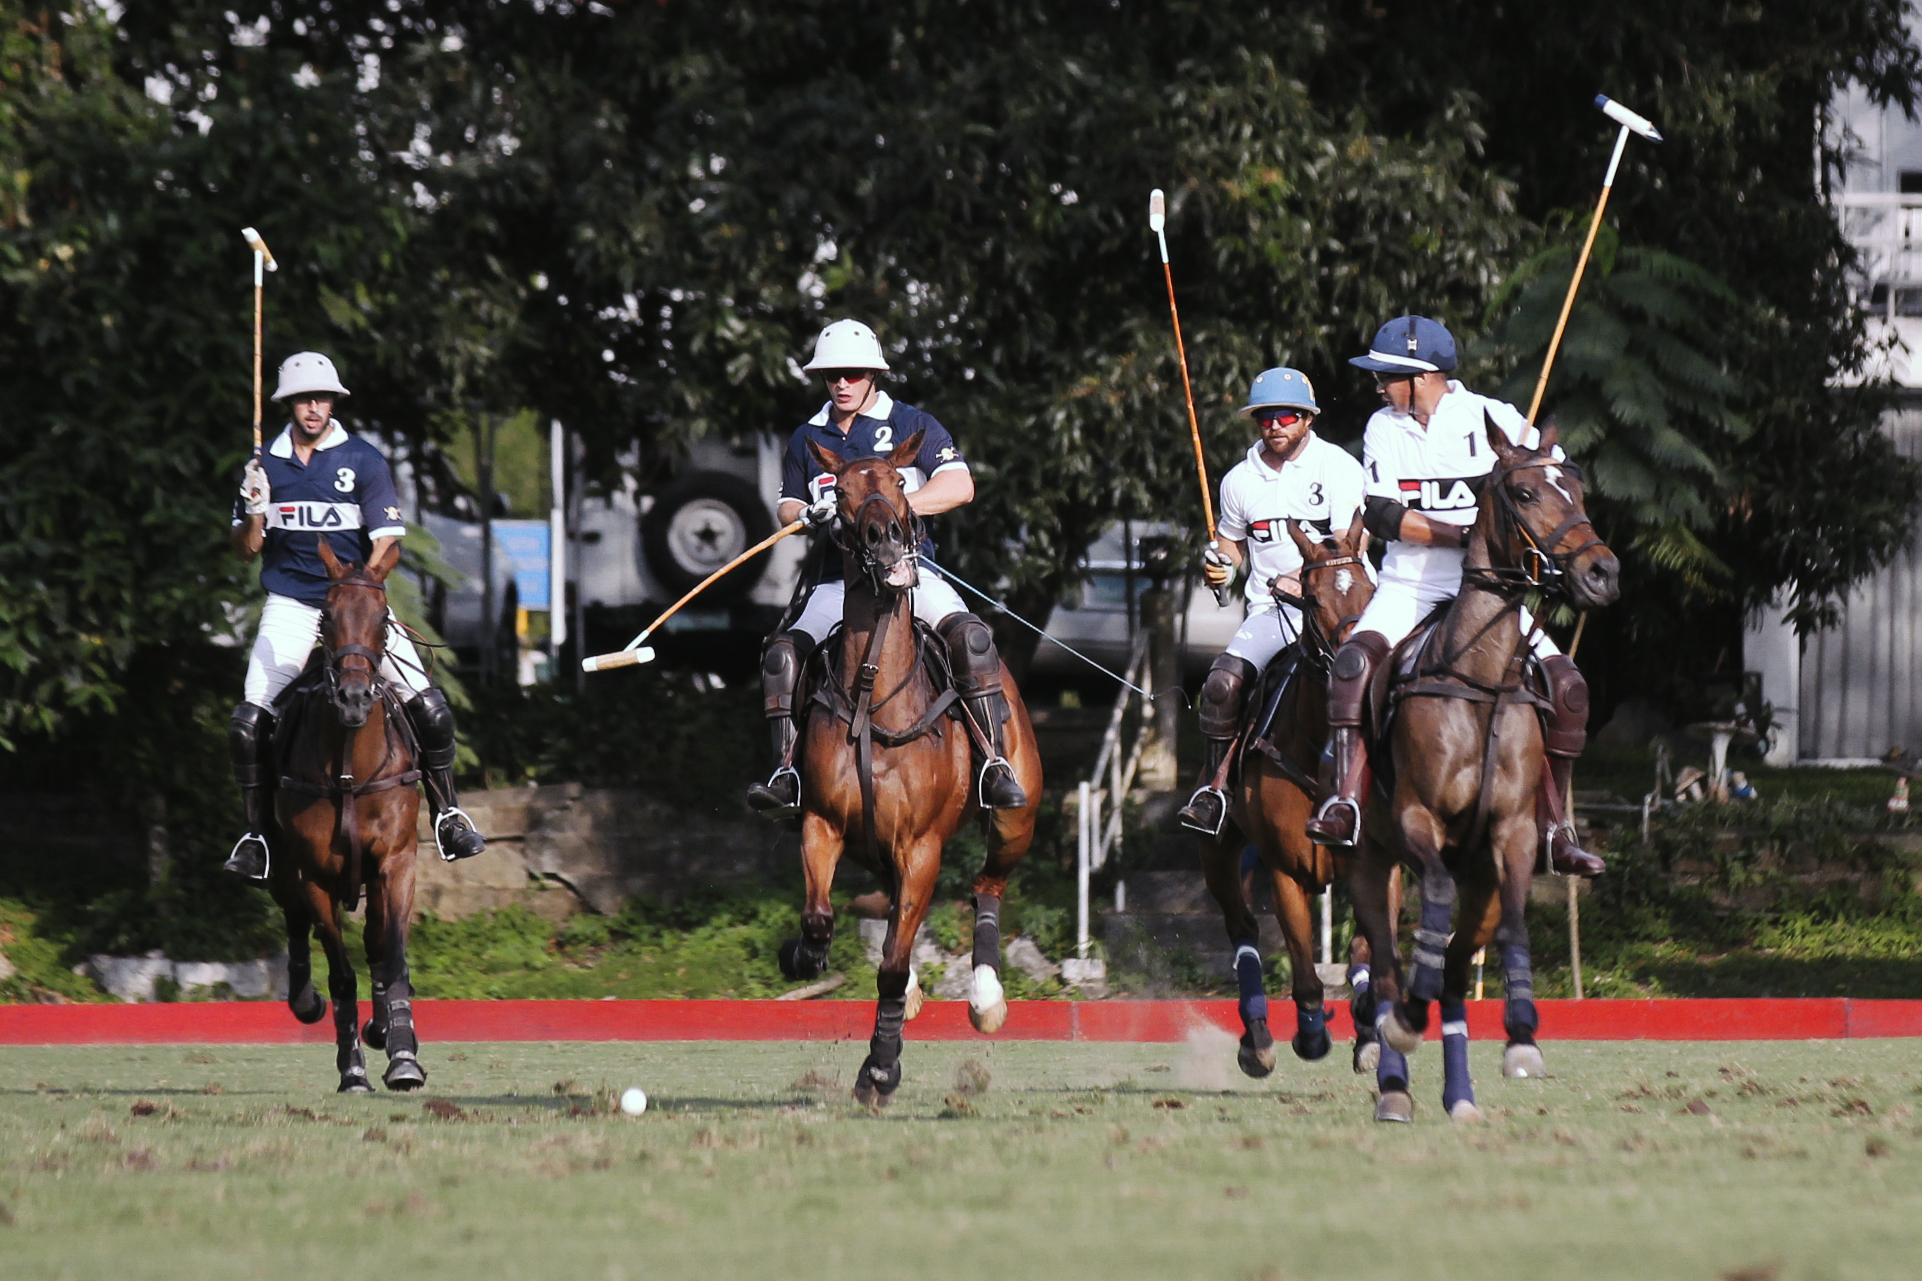 FILA Polo Cup 2017_High Goal-39.jpg